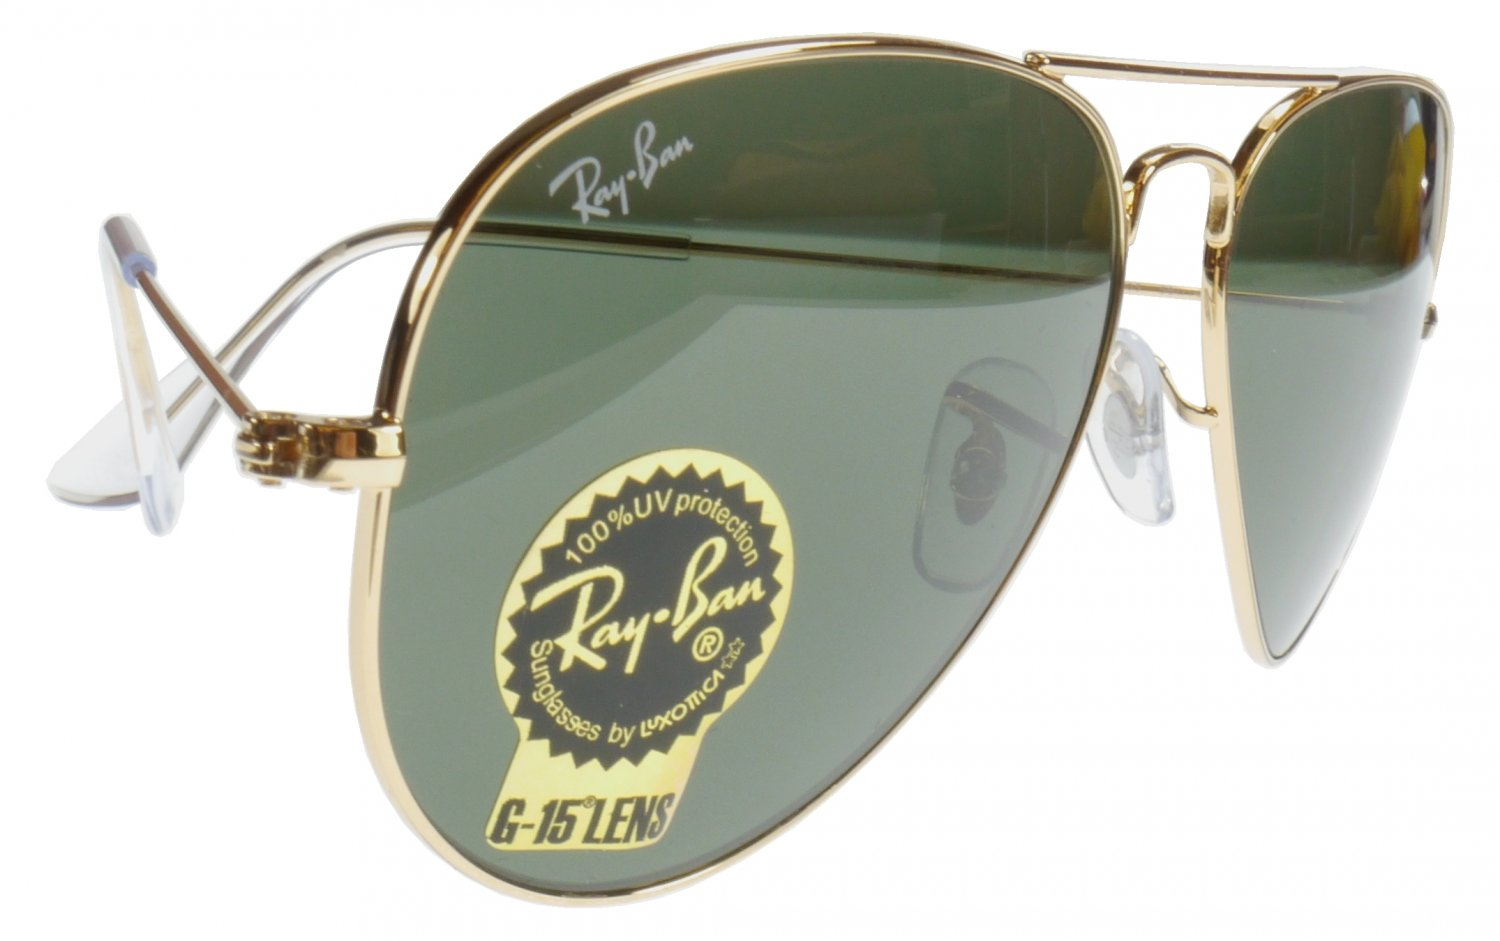 Ray Ban Large Metal Aviator Sunglasses Gold Frame G15 Lens Model 3025 Glass Lenses 58mm size